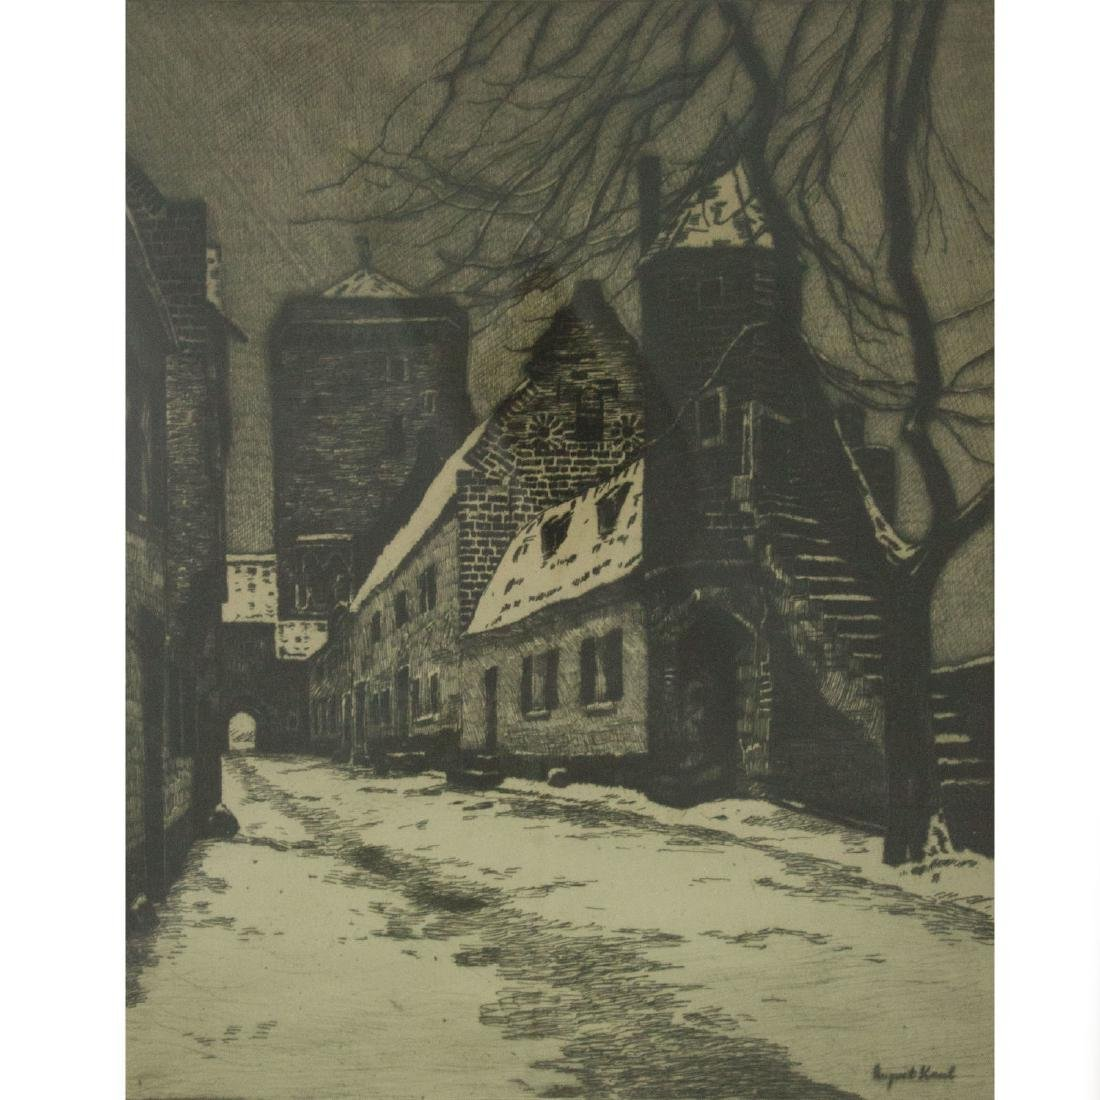 August Kaul (Germany, 1873-1949) - Street View,